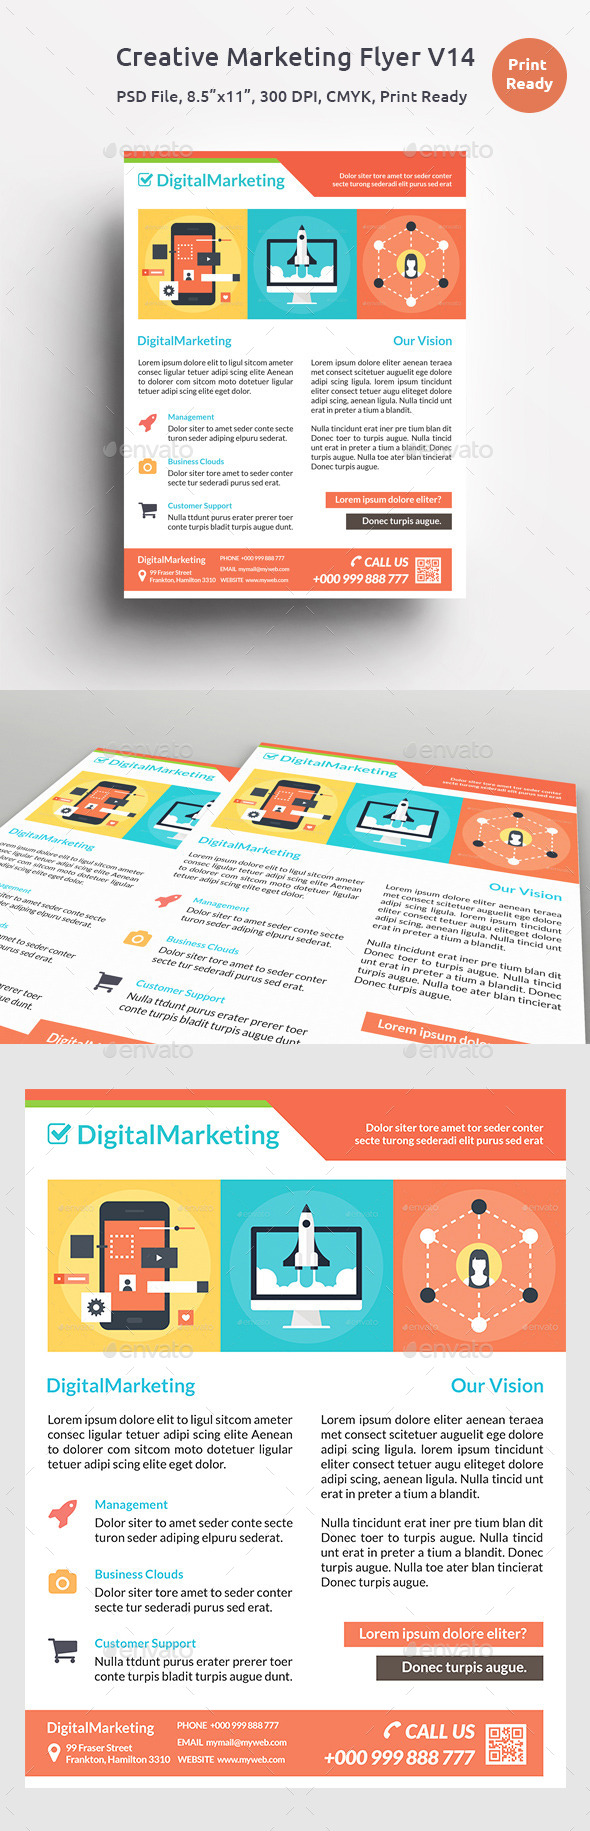 GraphicRiver Creative Marketing Flyer V14 11644685